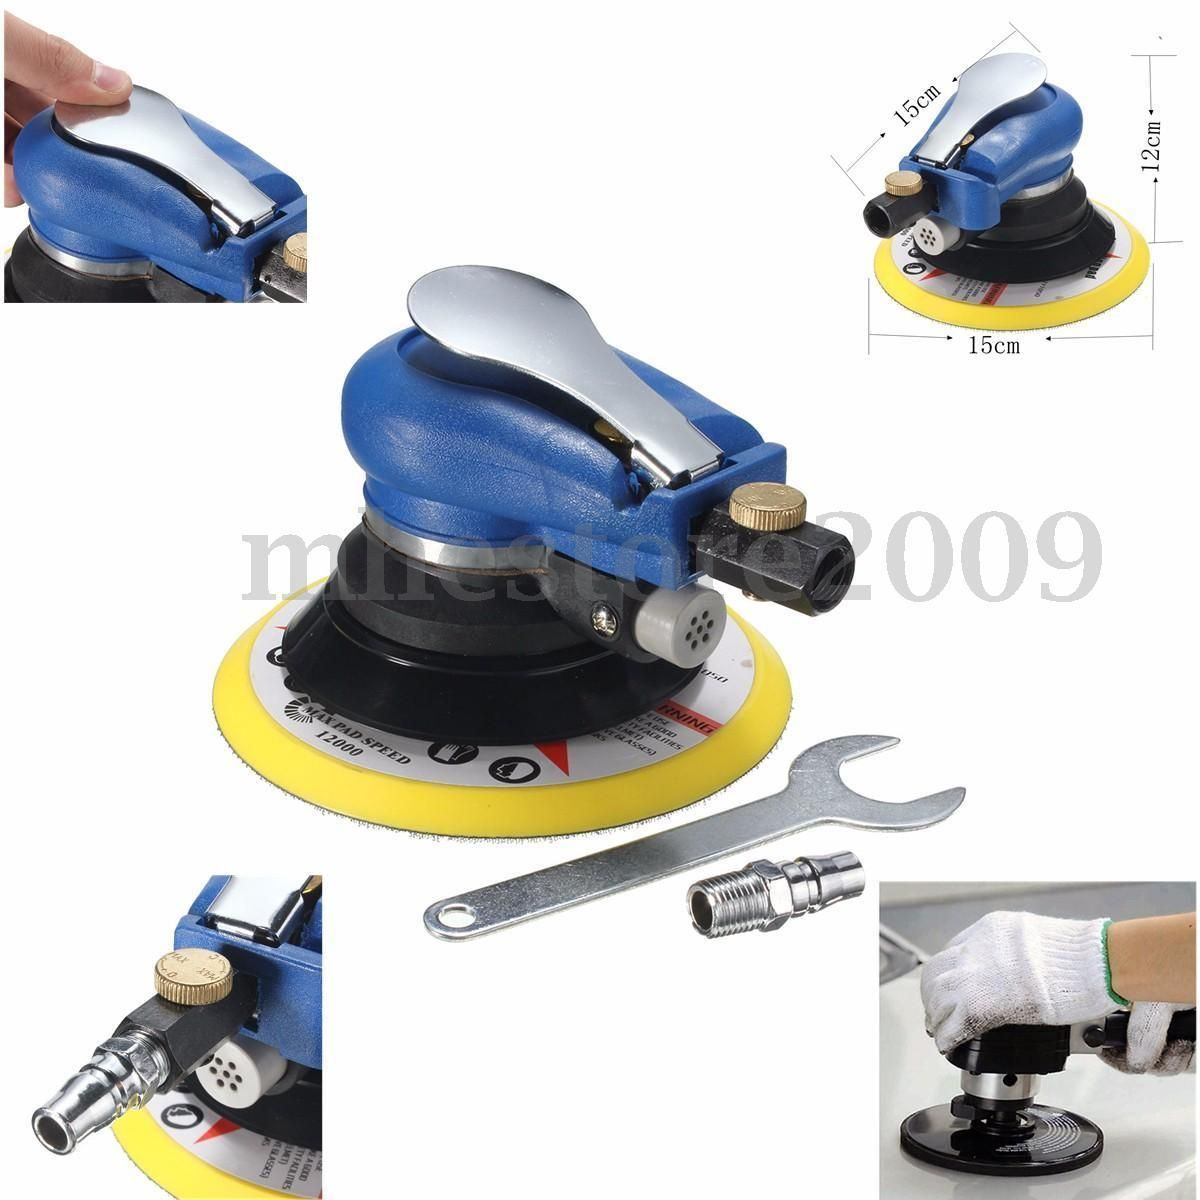 Top 5 Best Random Orbital Sander Reviews Best Random Orbital Sander Air Sanders Vacuums